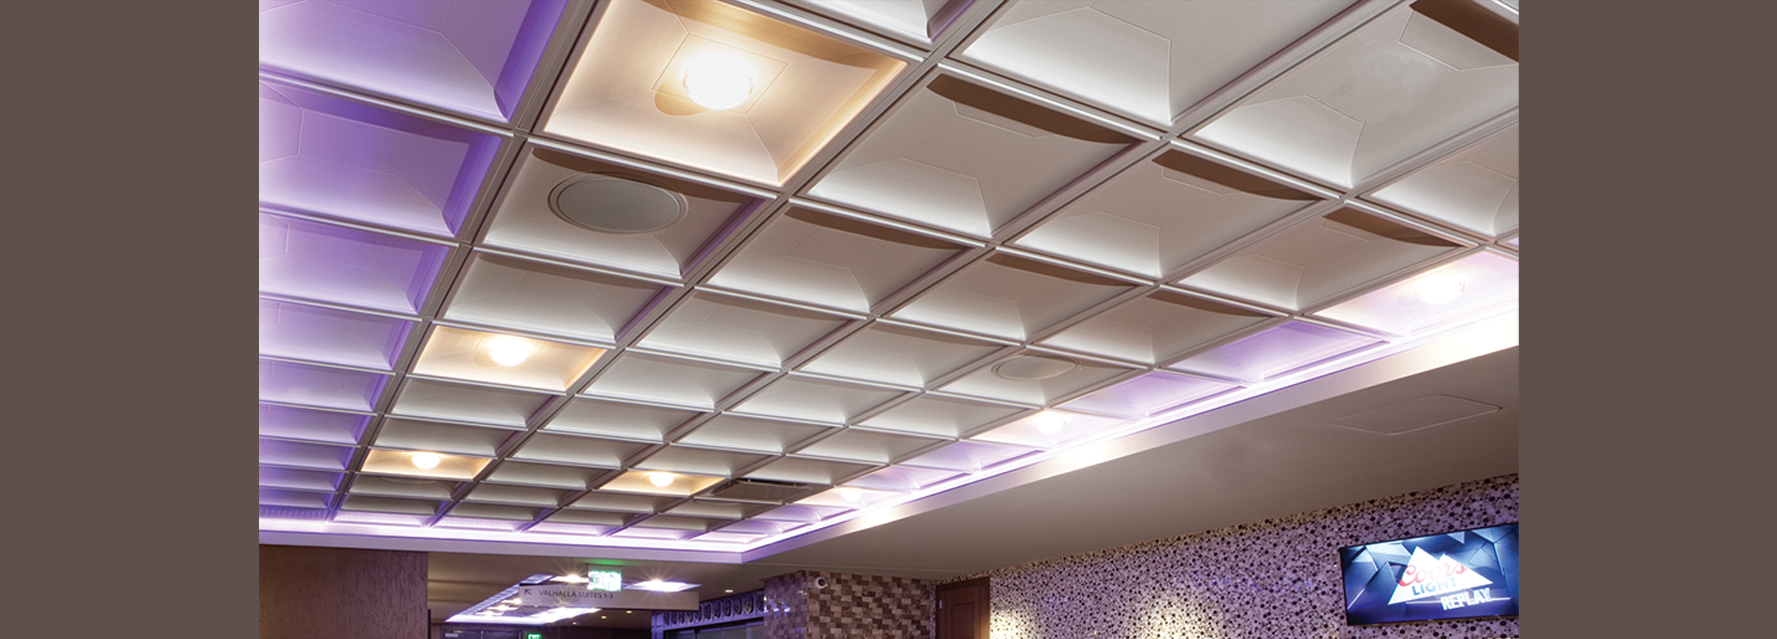 Specialty Plaster Ceiling Tile